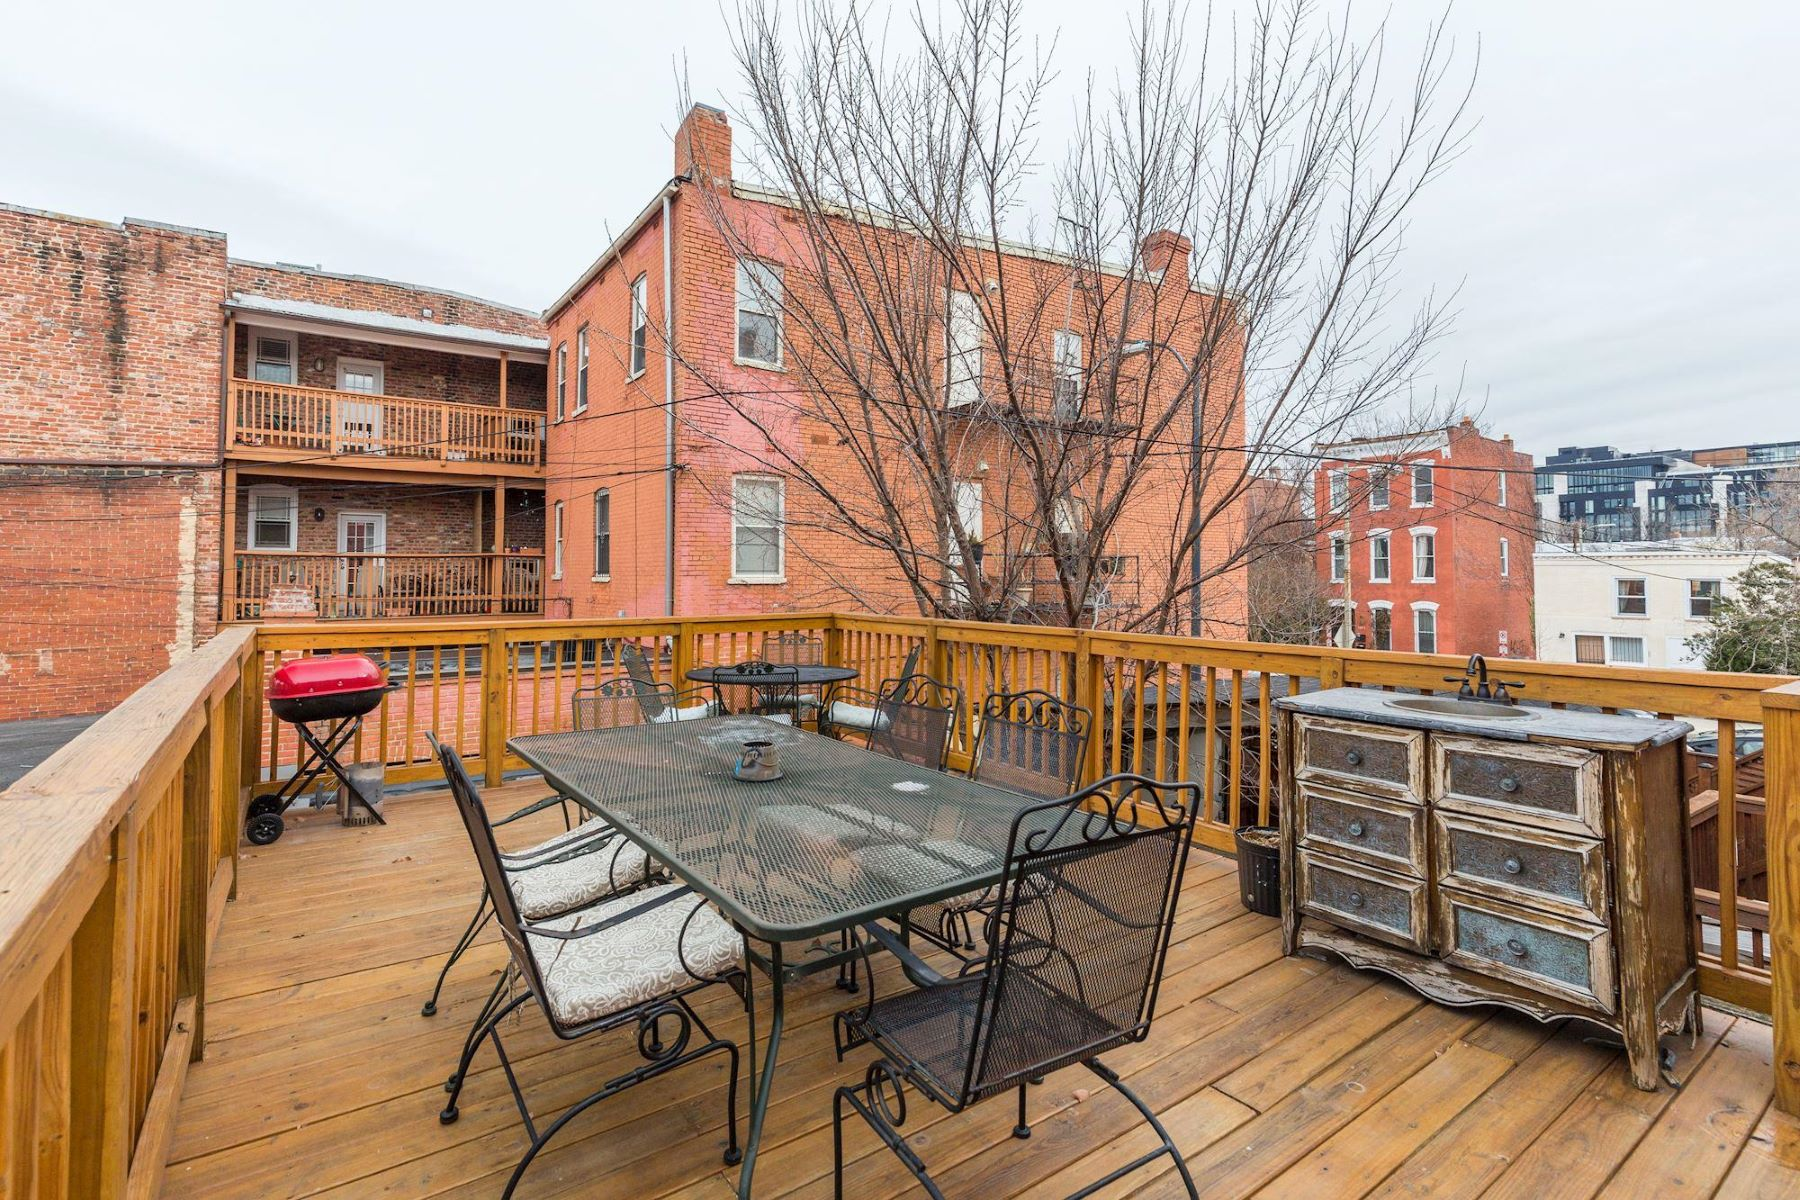 Additional photo for property listing at 1005 O St Nw 1005 O St Nw Washington, District Of Columbia 20001 United States